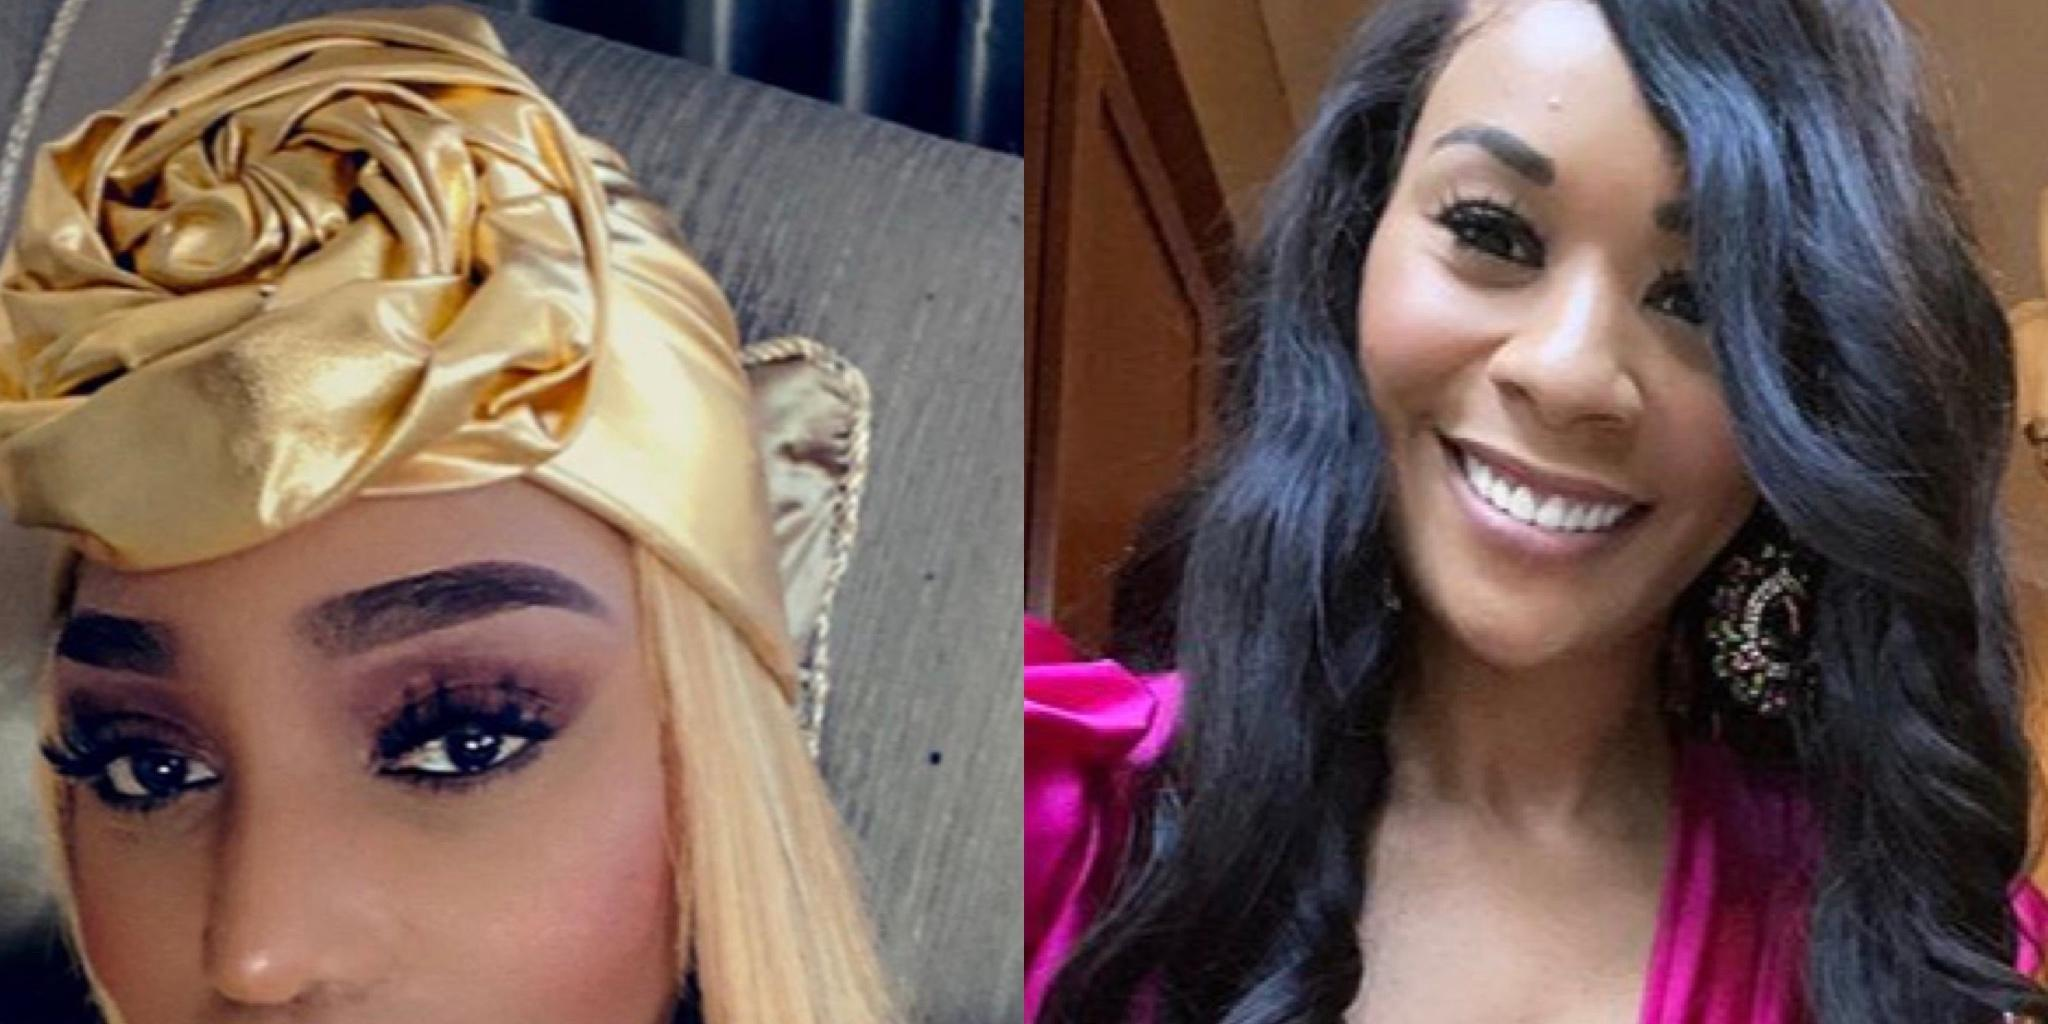 Yovanna Momplaisir Tells All About Her Explosive Online Feud With NeNe Leakes